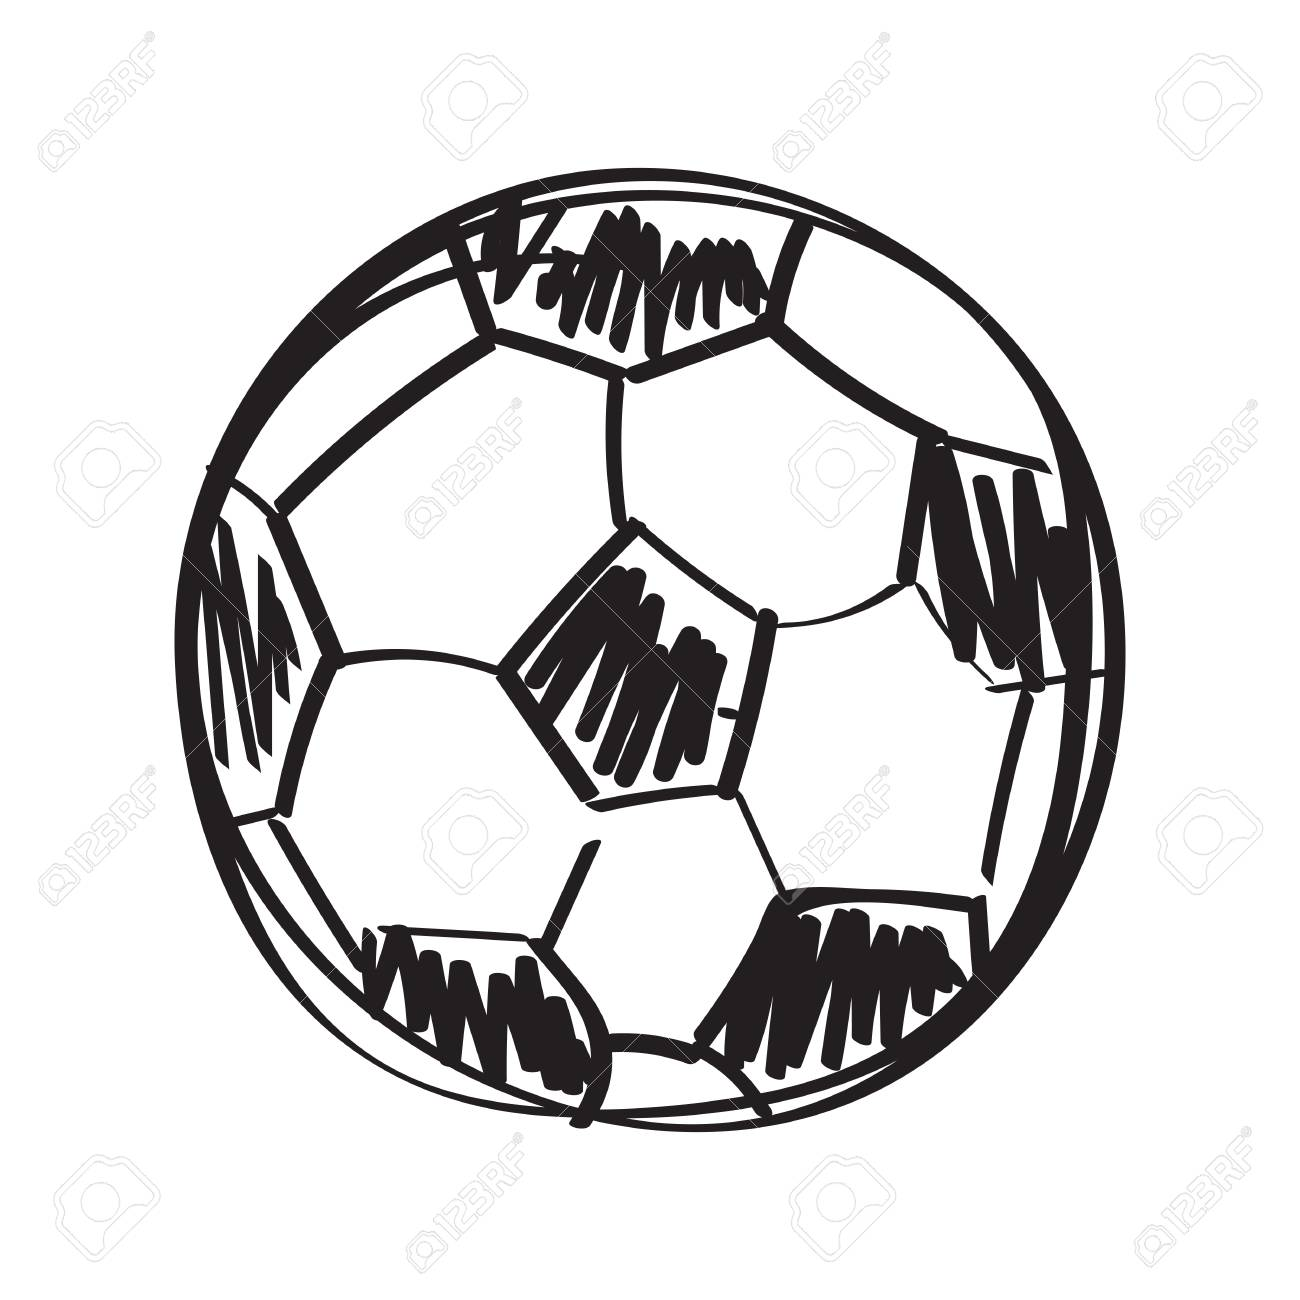 Hand drawn football sketch isolated illustration on white background stock vector 98984615